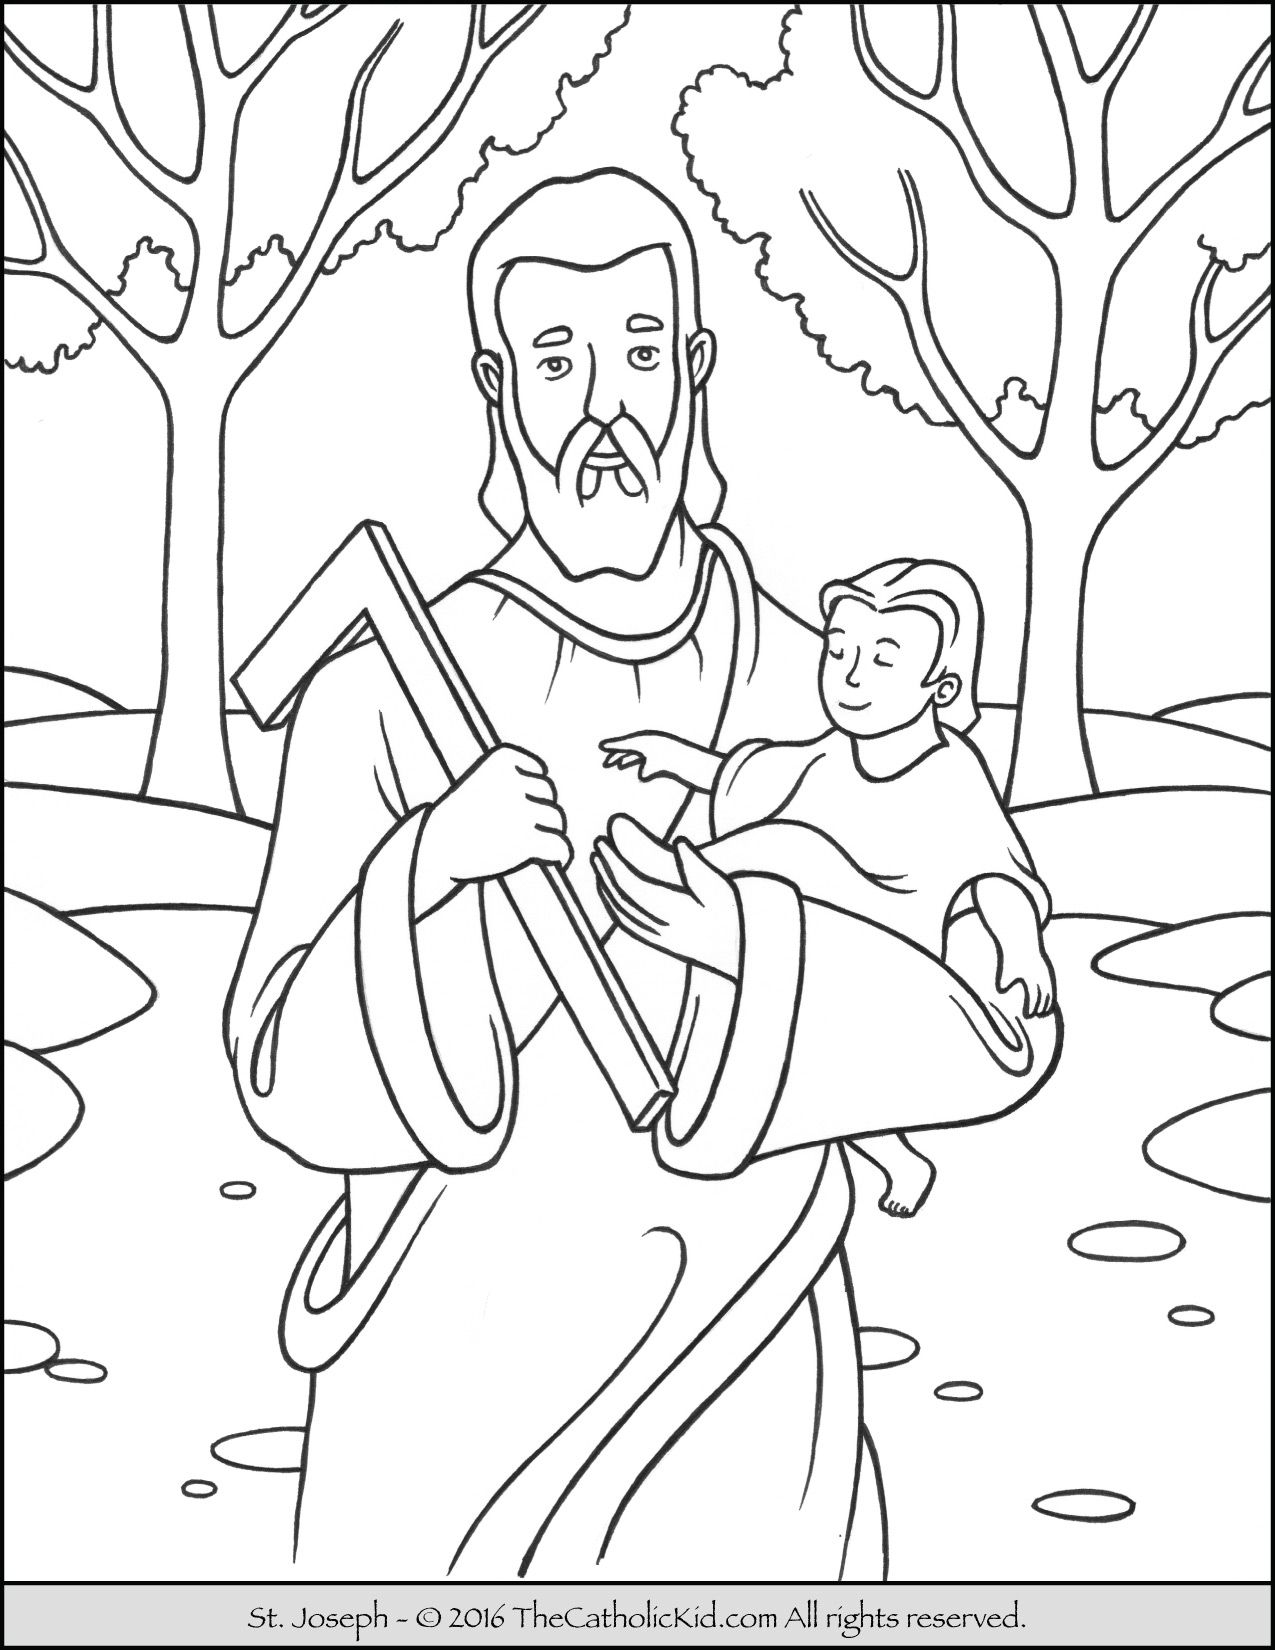 Saint Joseph Coloring Page The Catholic Kid Fathers Day Coloring Page Sunday School Coloring Pages Coloring Pages